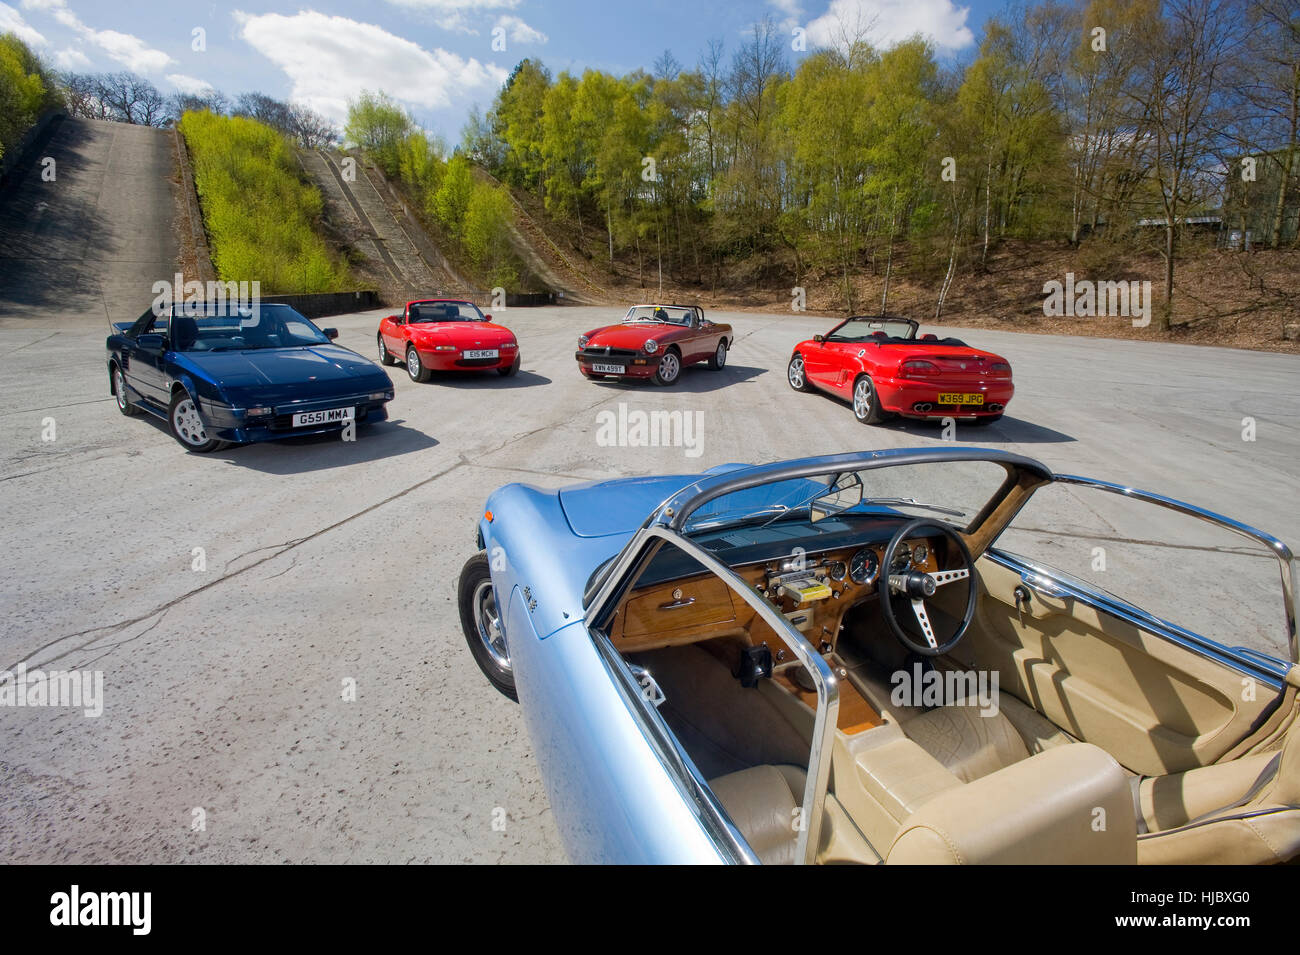 Open top classic sports cars from the 60s, 70s, 80s, 90s and 00s, in that order: Lotus Elan, MGB, Toyota MR2, Mazda - Stock Image